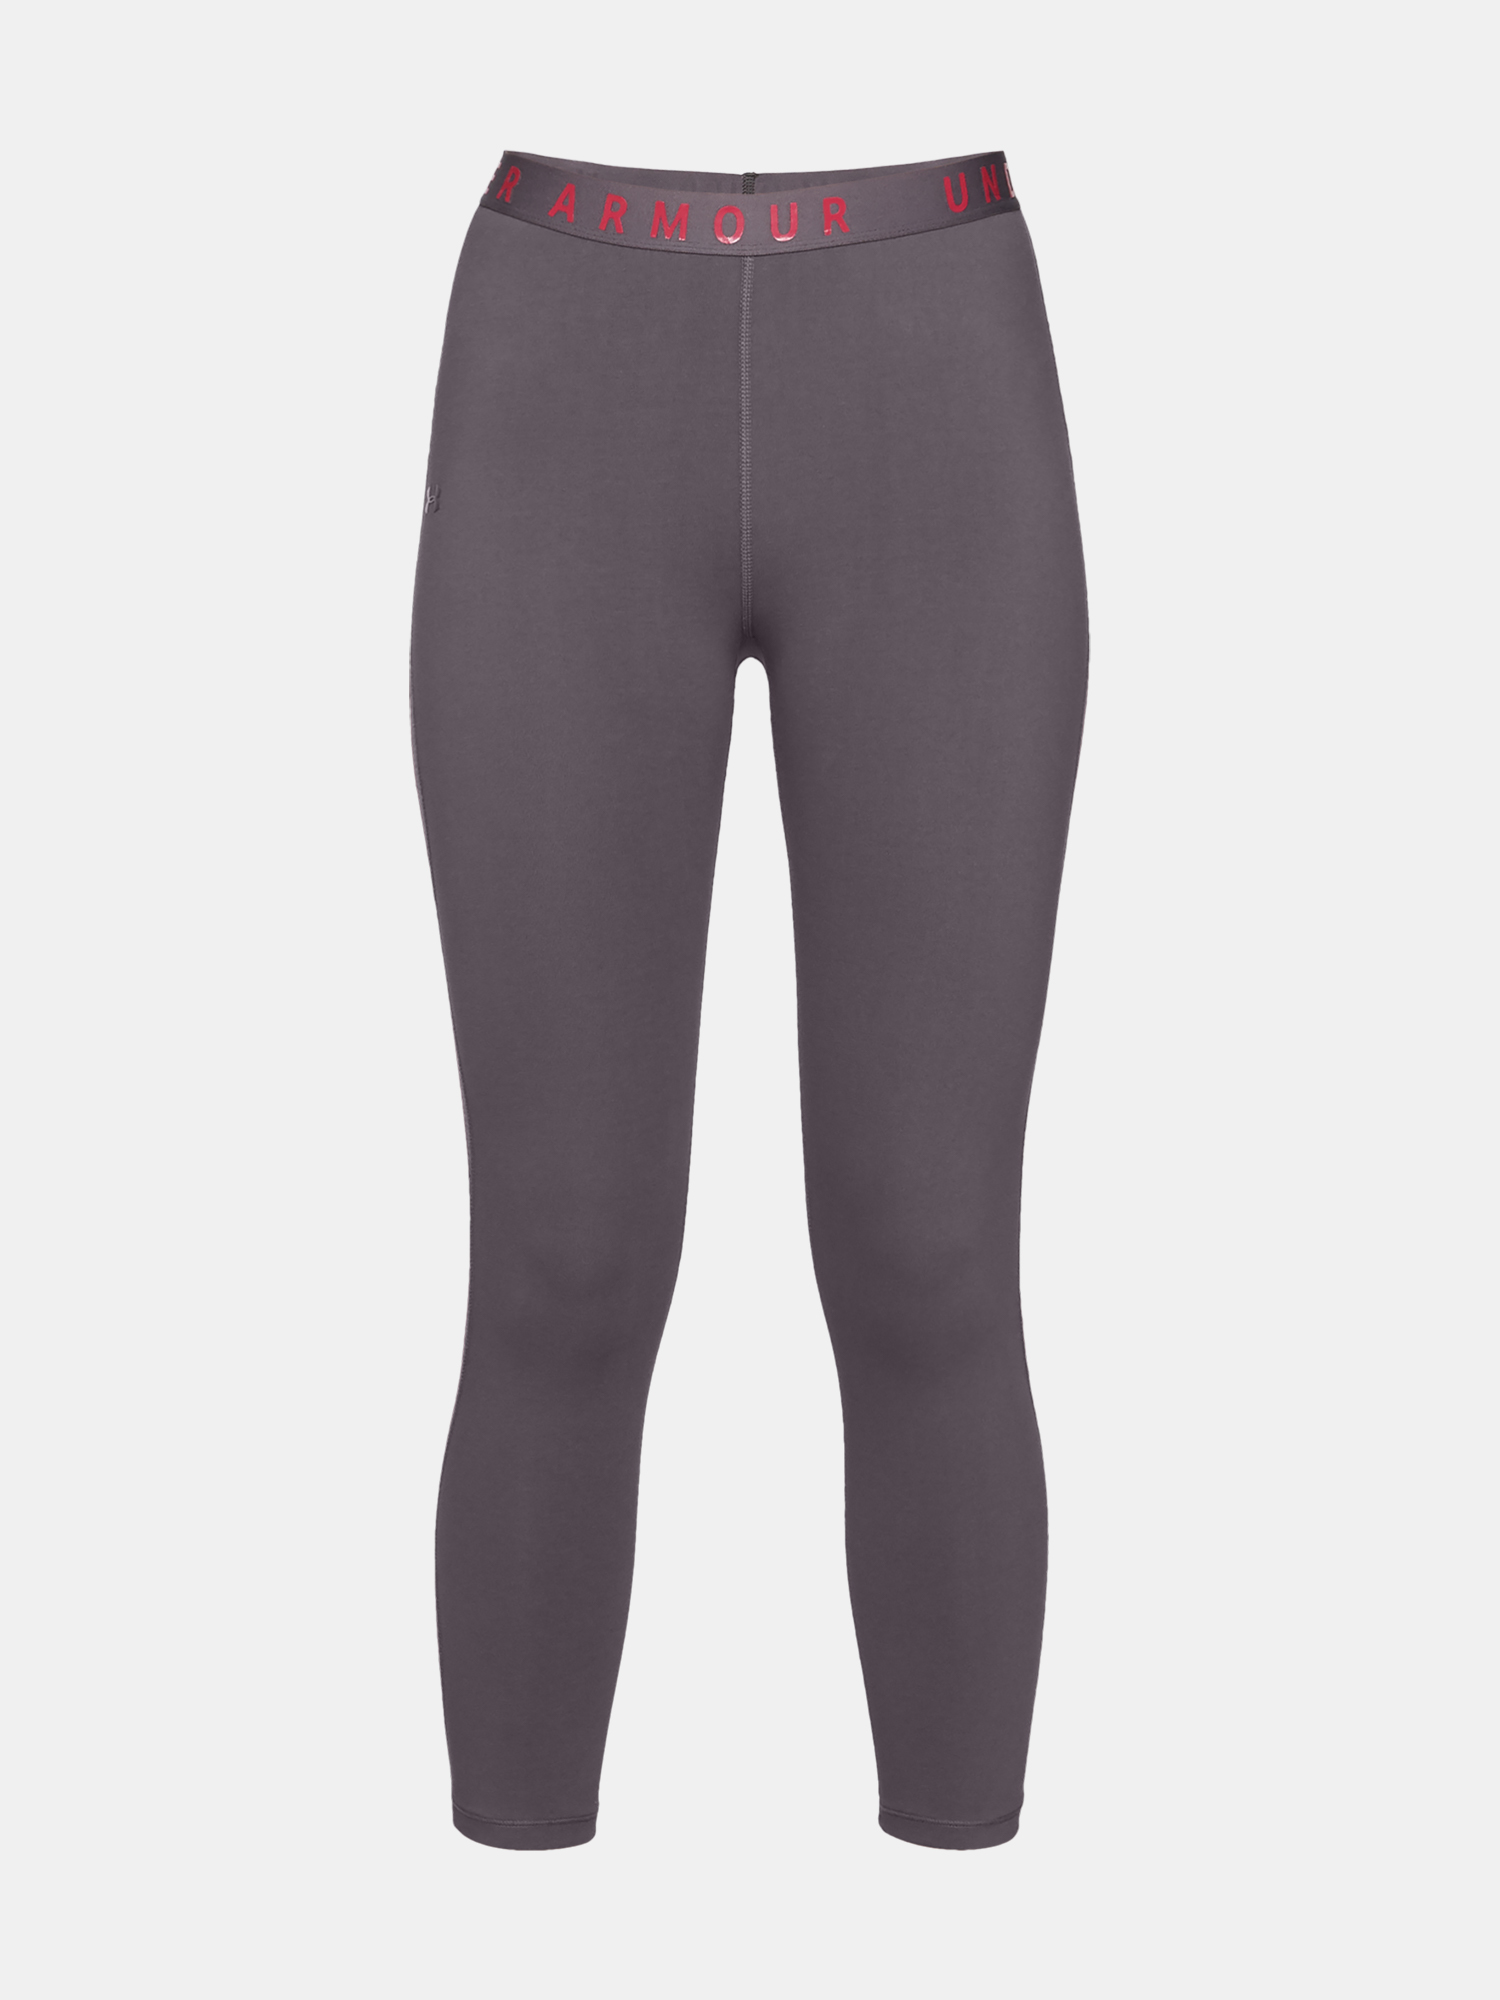 Legíny Under Armour FAVORITE MESH CROP -GRY (3)